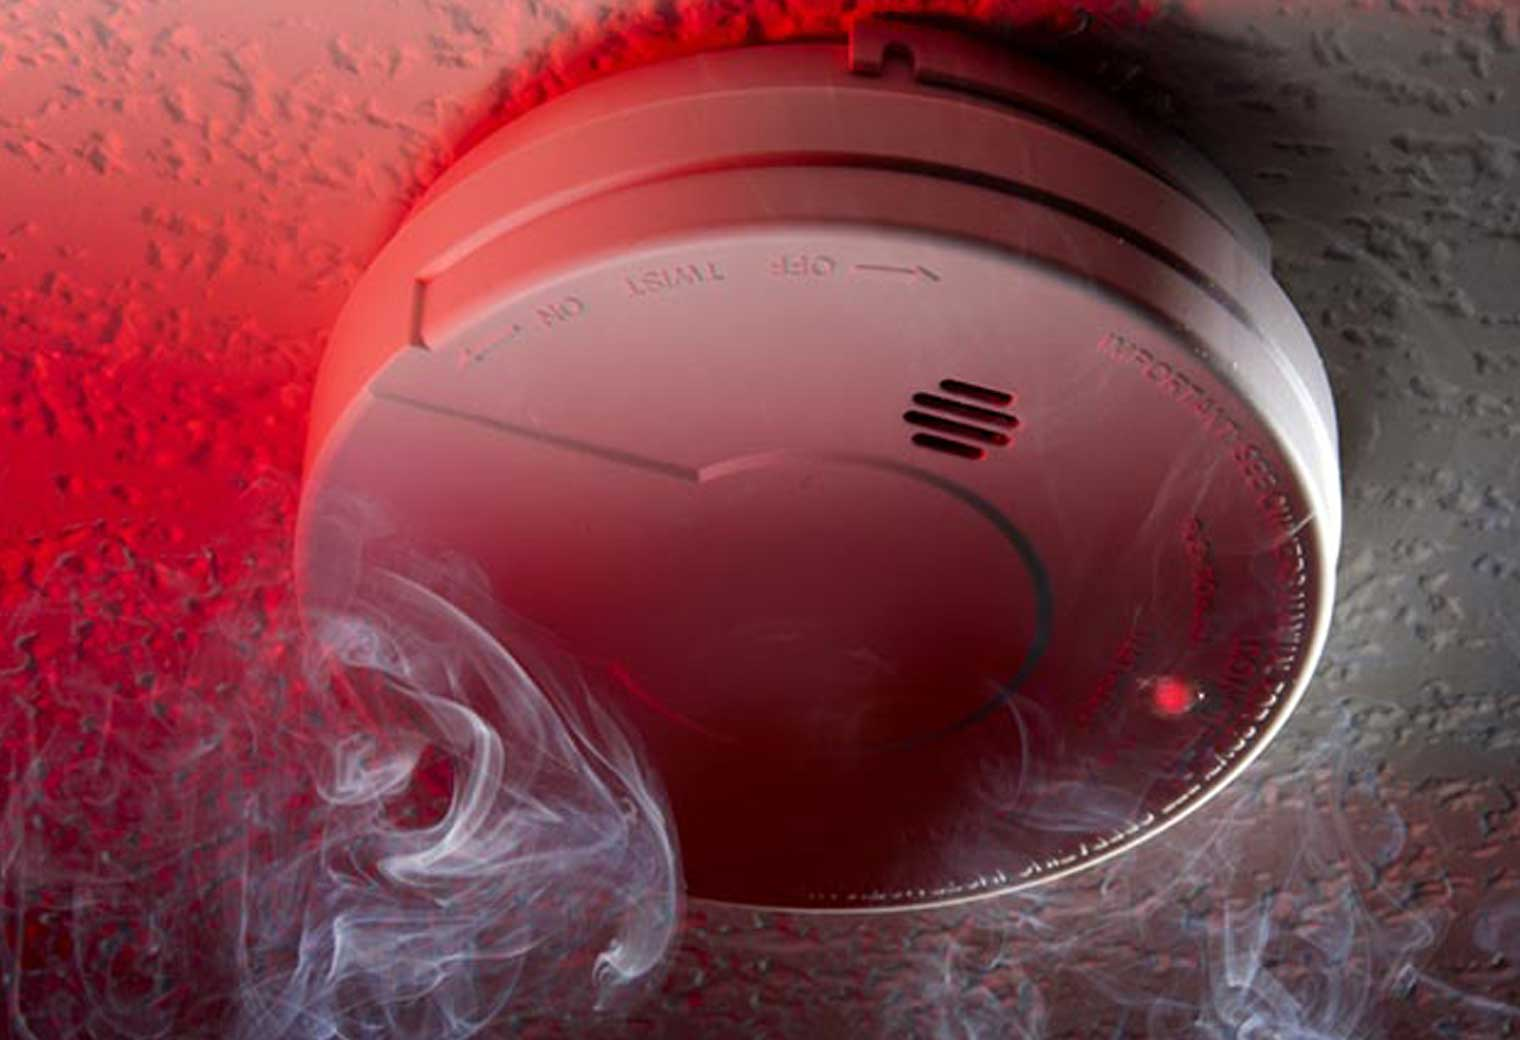 Landlords Fire Amp Co Detector Standards And Regulations